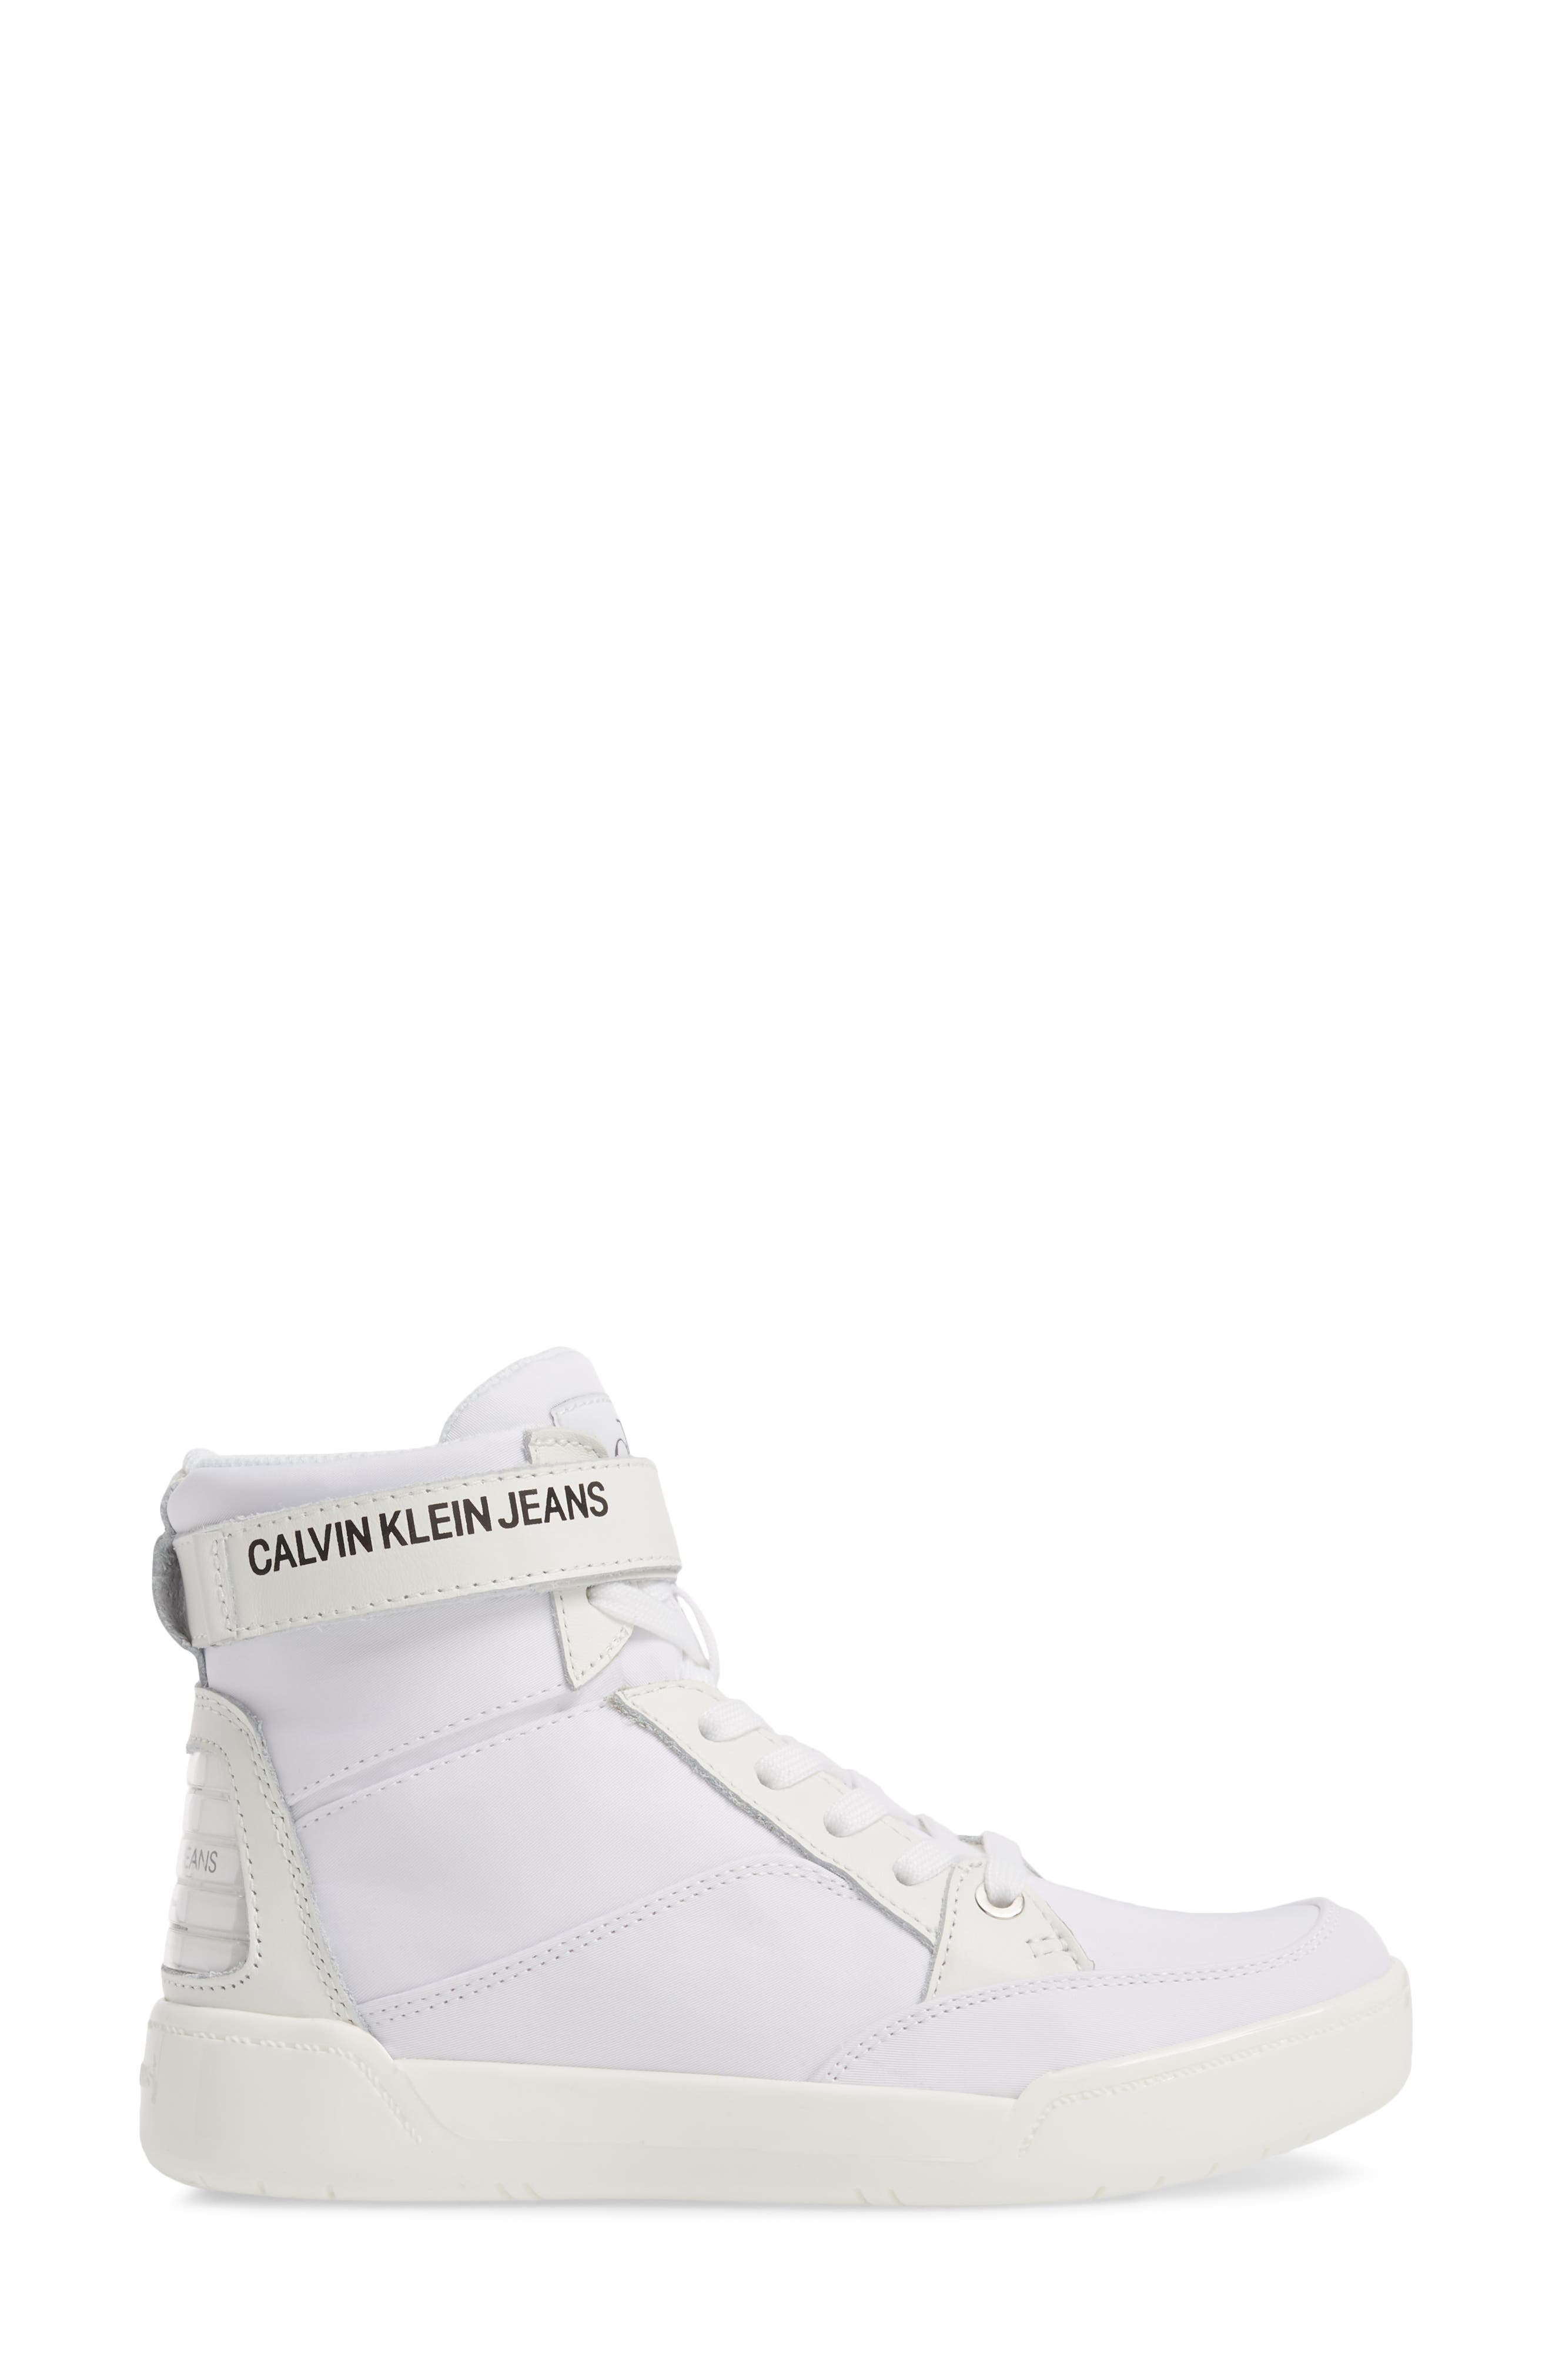 Nelda High Top Sneaker,                             Alternate thumbnail 3, color,                             WHITE LEATHER